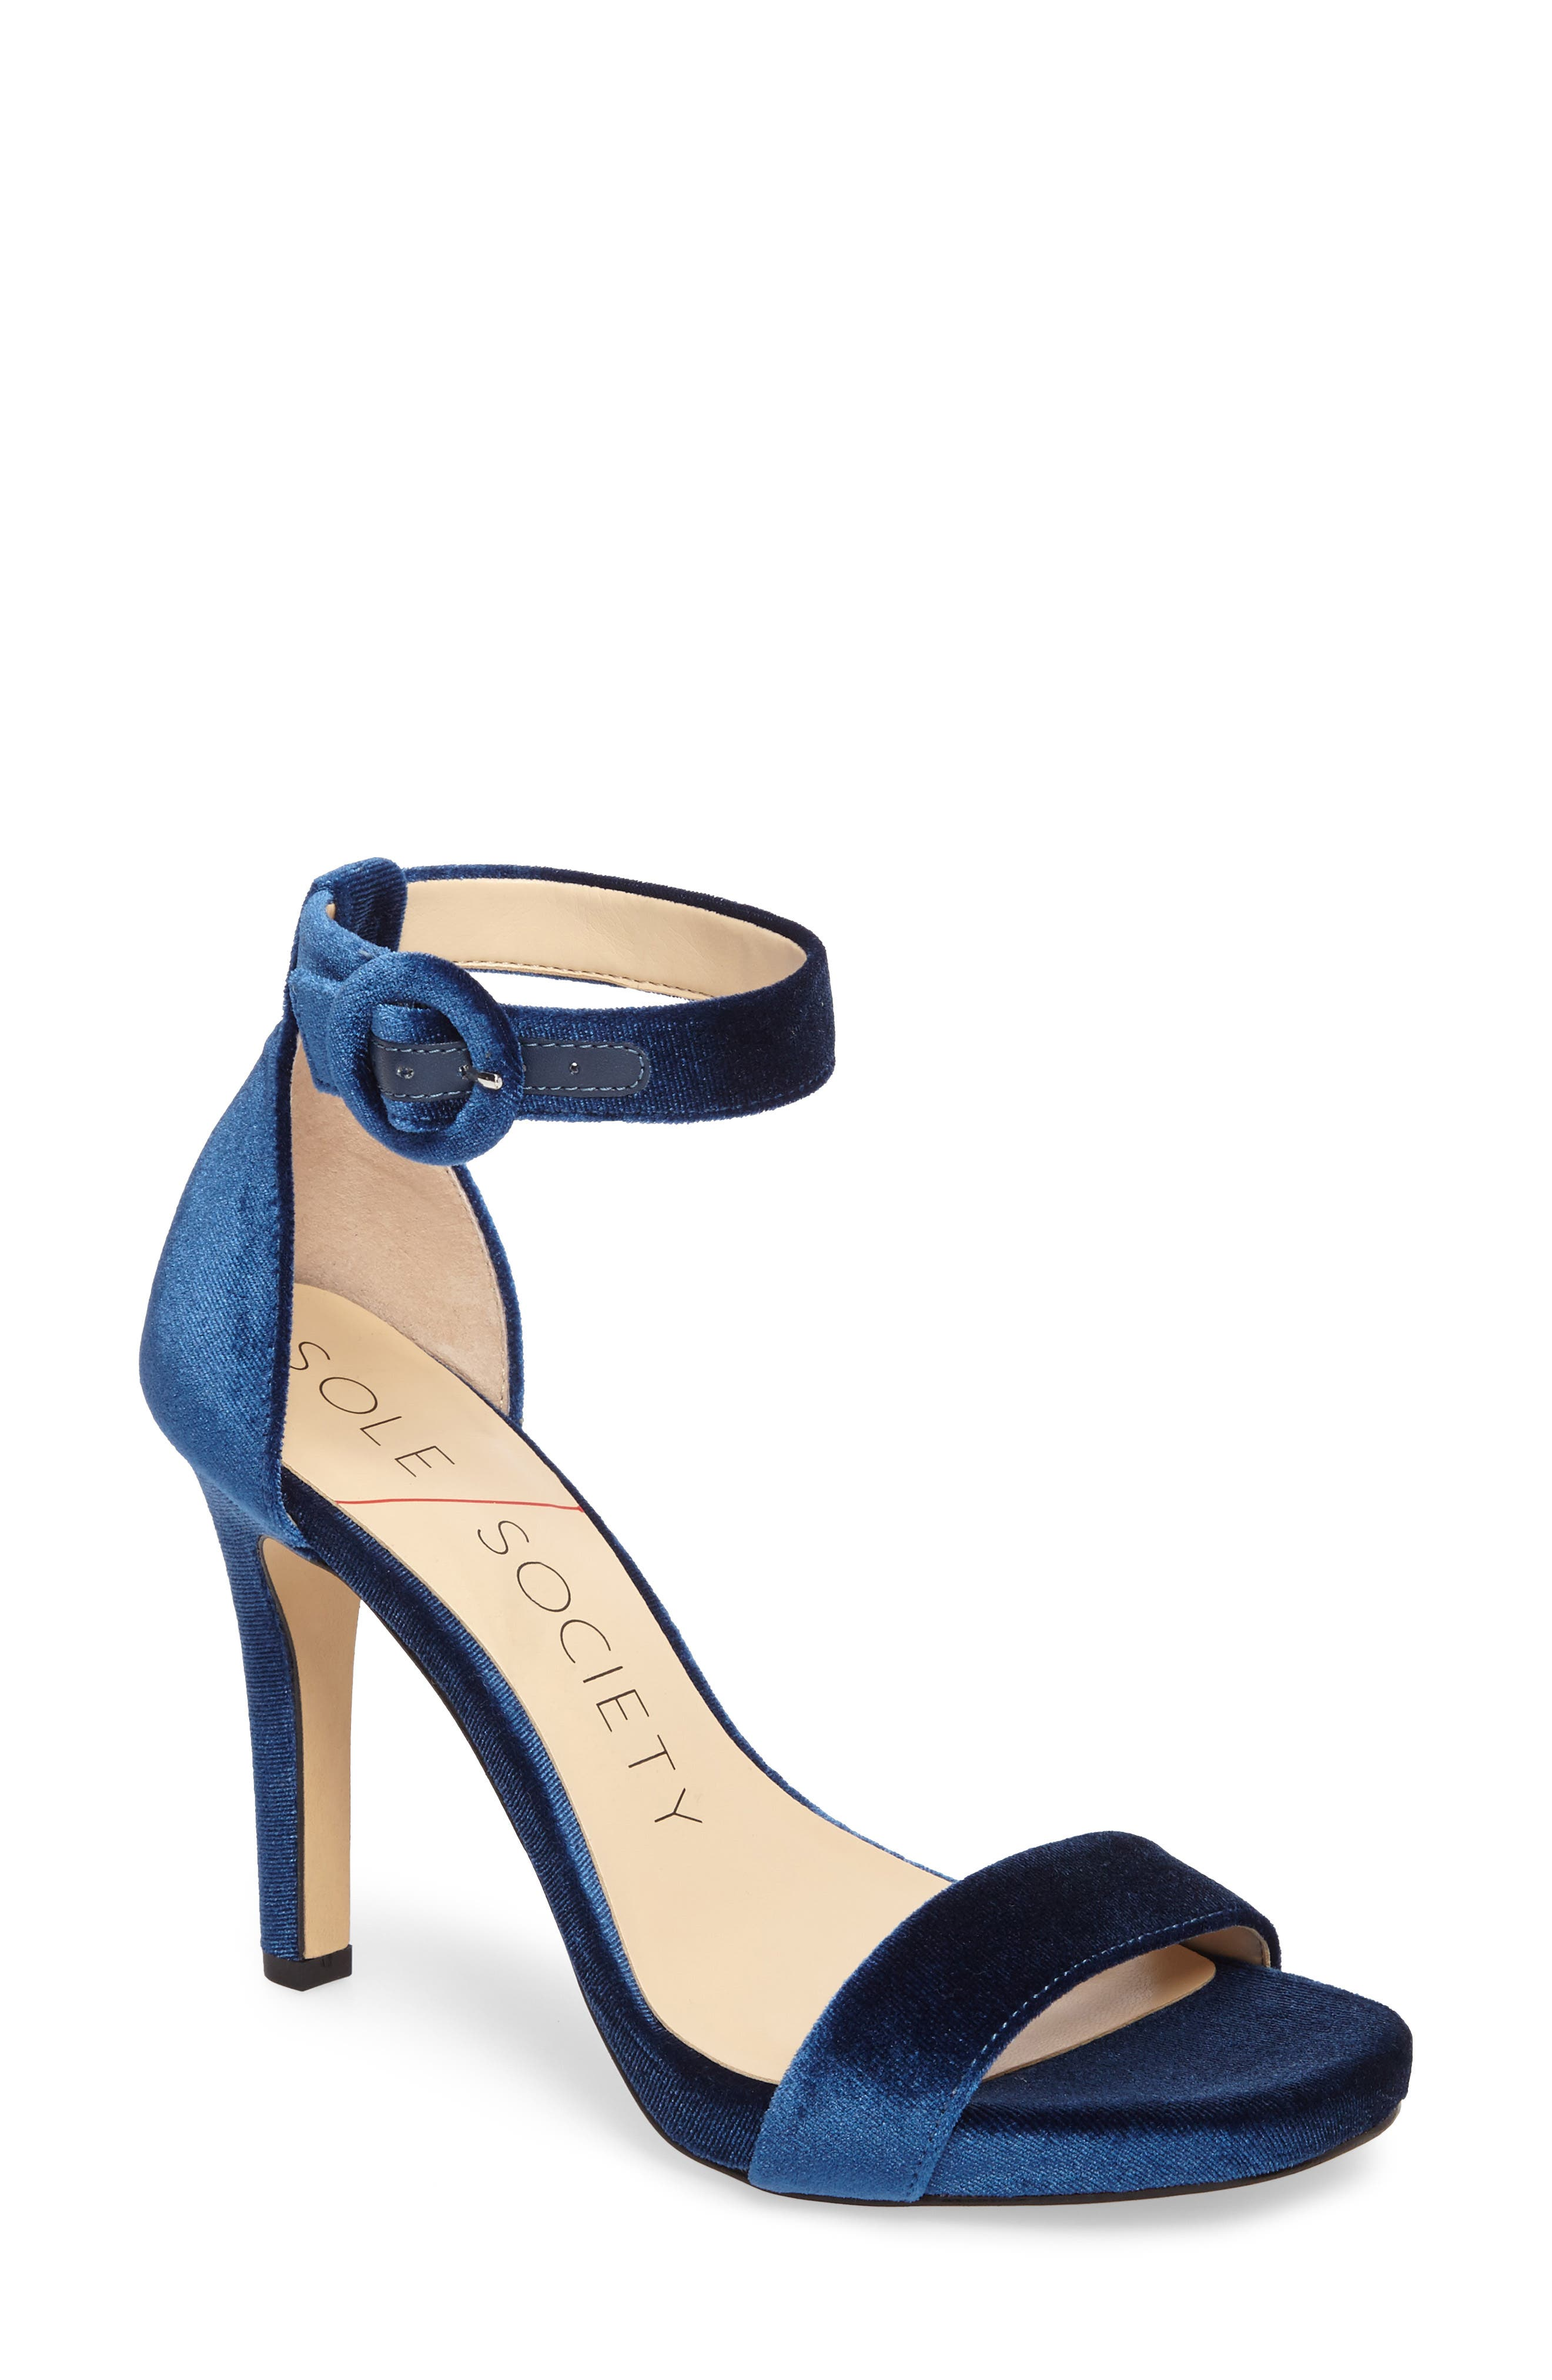 Alternate Image 1 Selected - Sole Society Emelia Ankle Strap Sandal (Women)